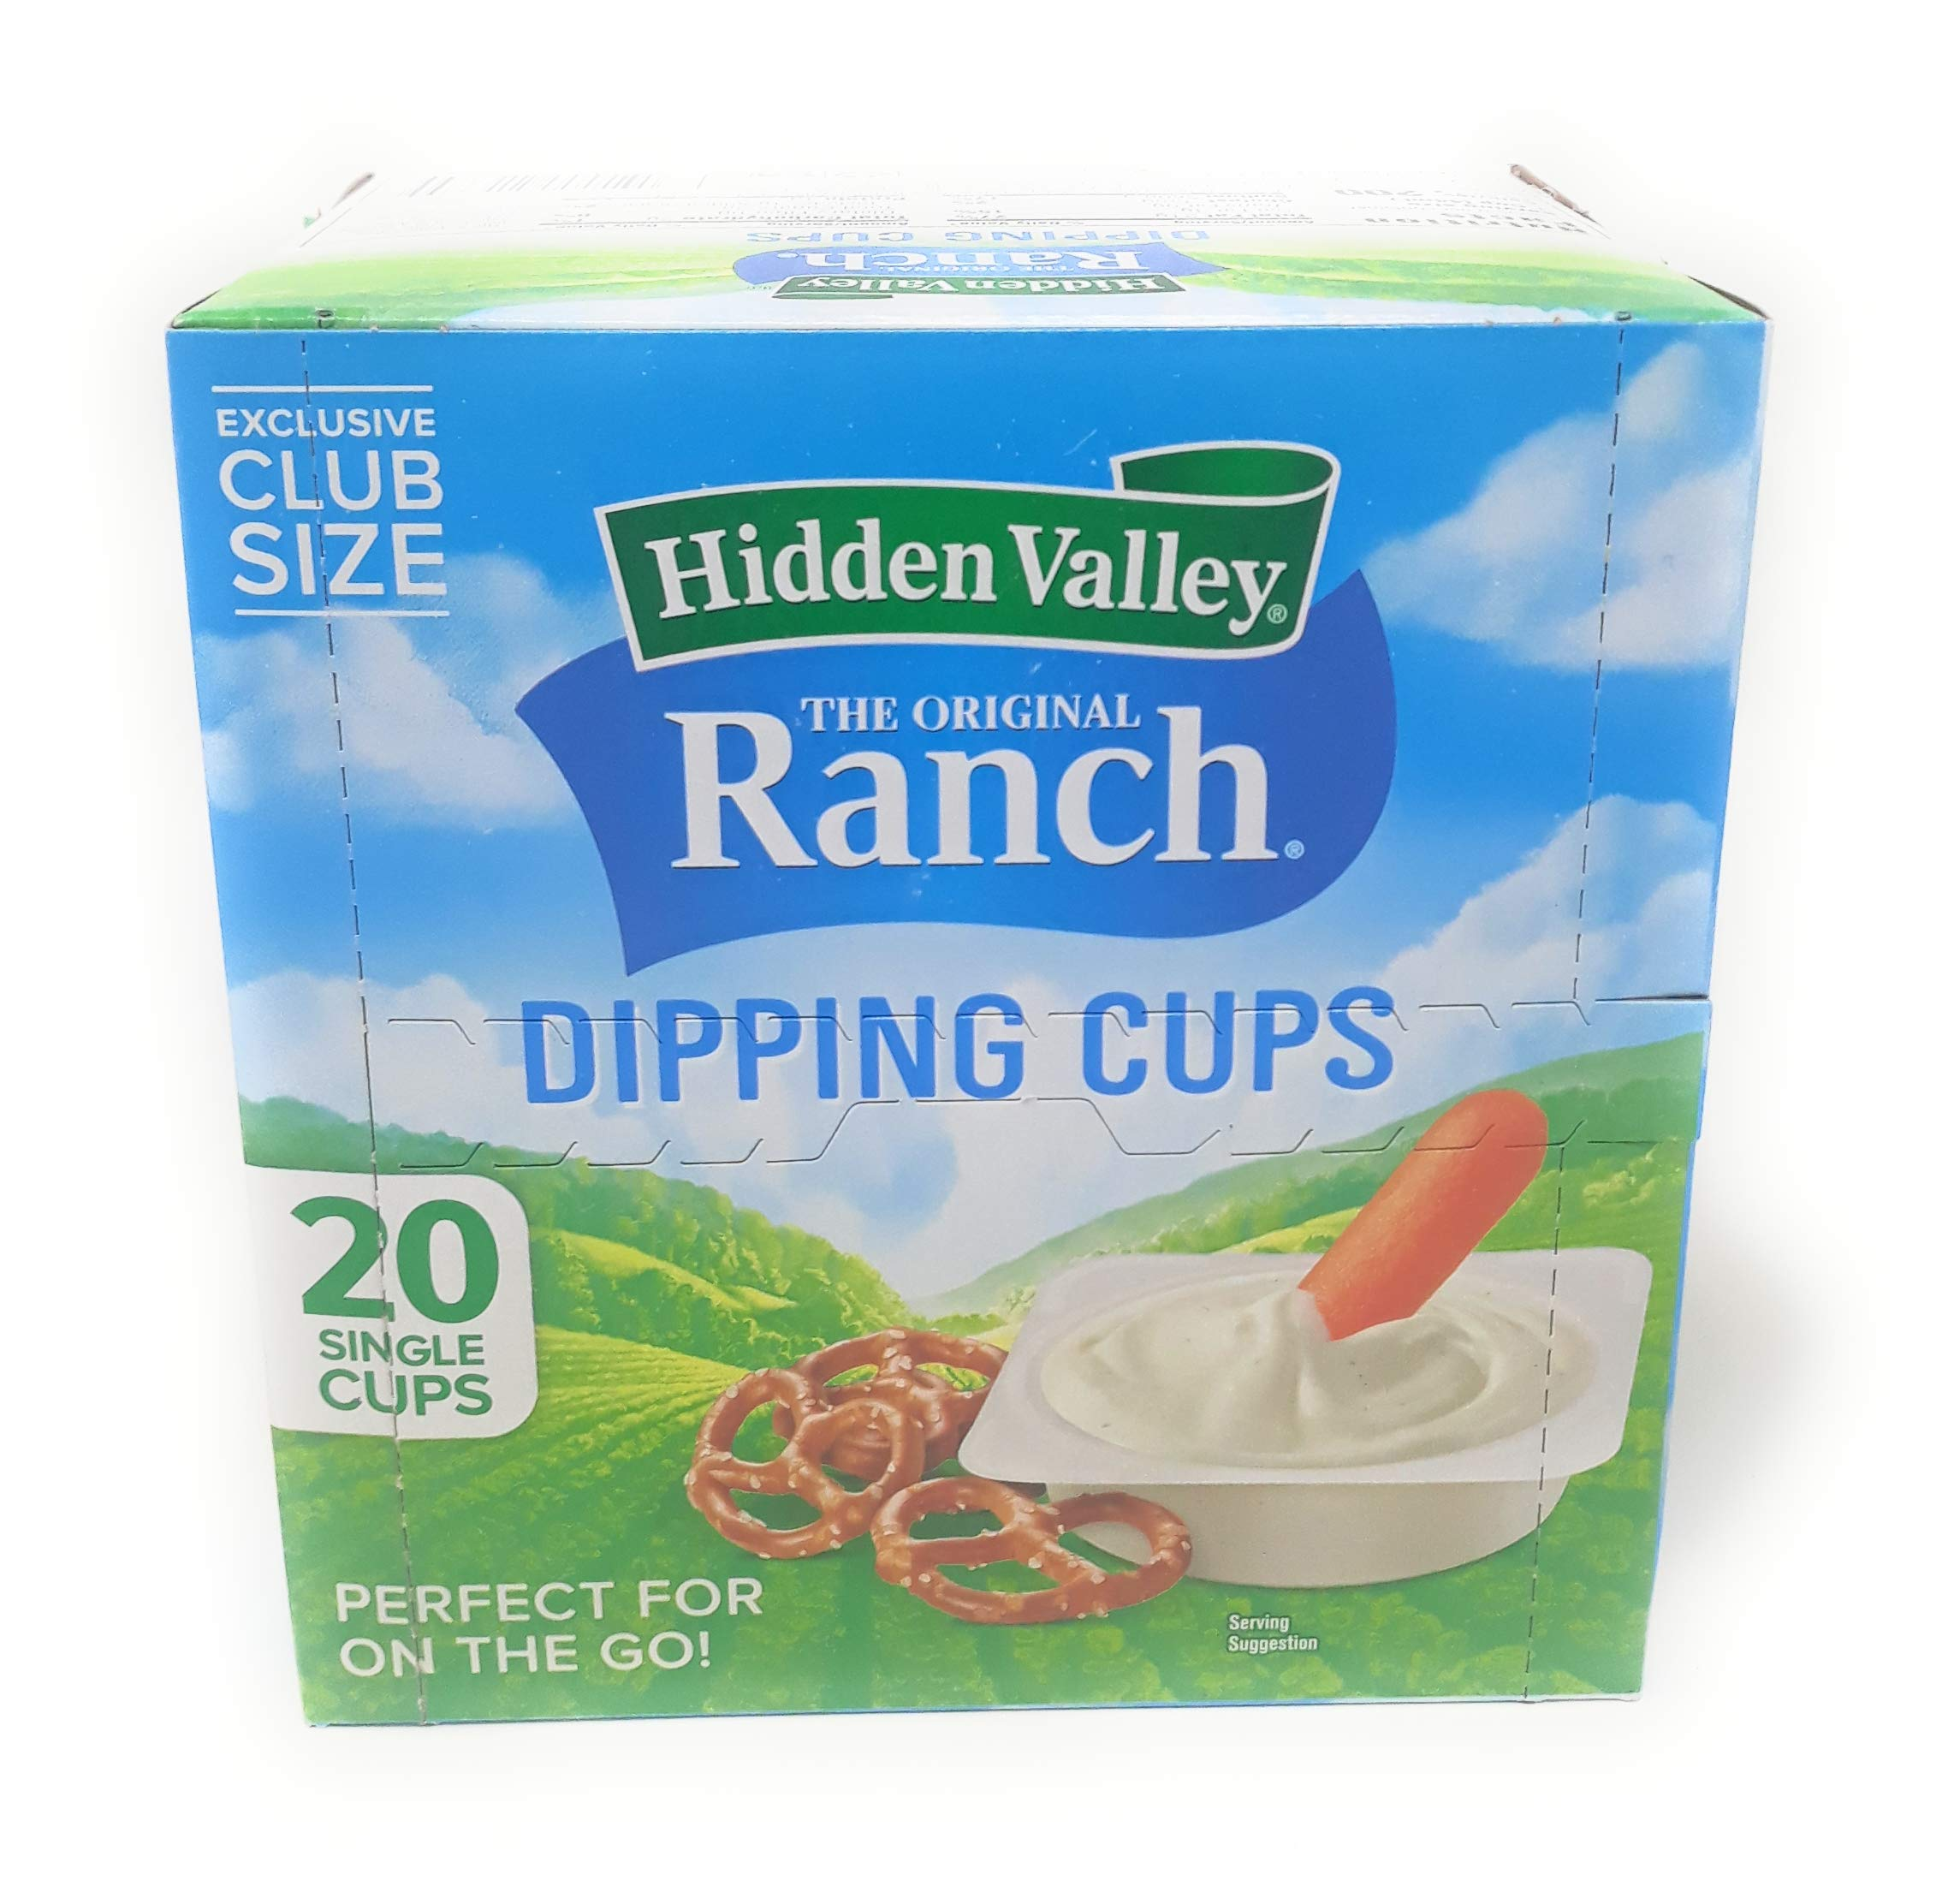 Hidden Valley Ranch Dipping Cups 20 count by Hidden Valley